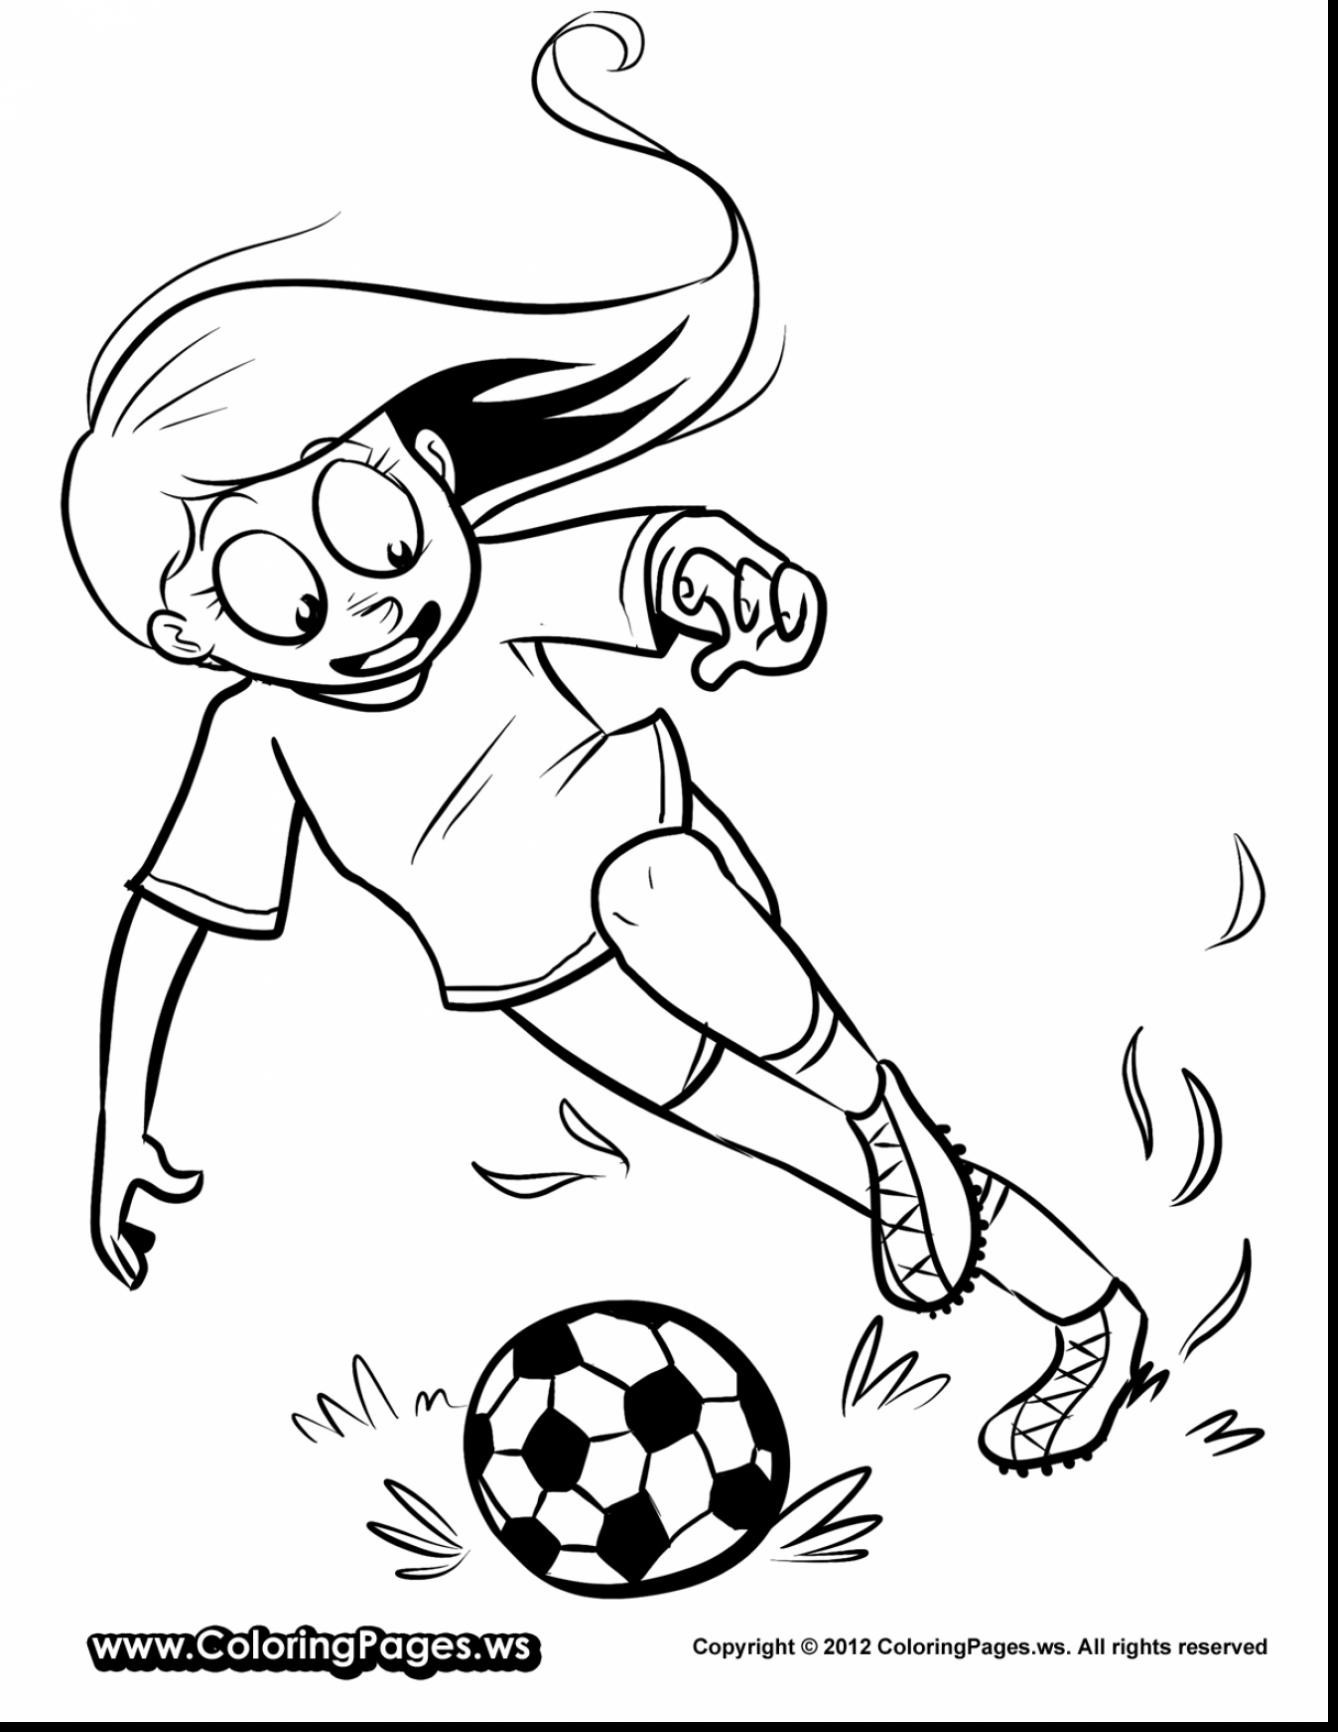 1338x1732 Neymar Coloring Page Free Printable Pages Entrancing Soccer